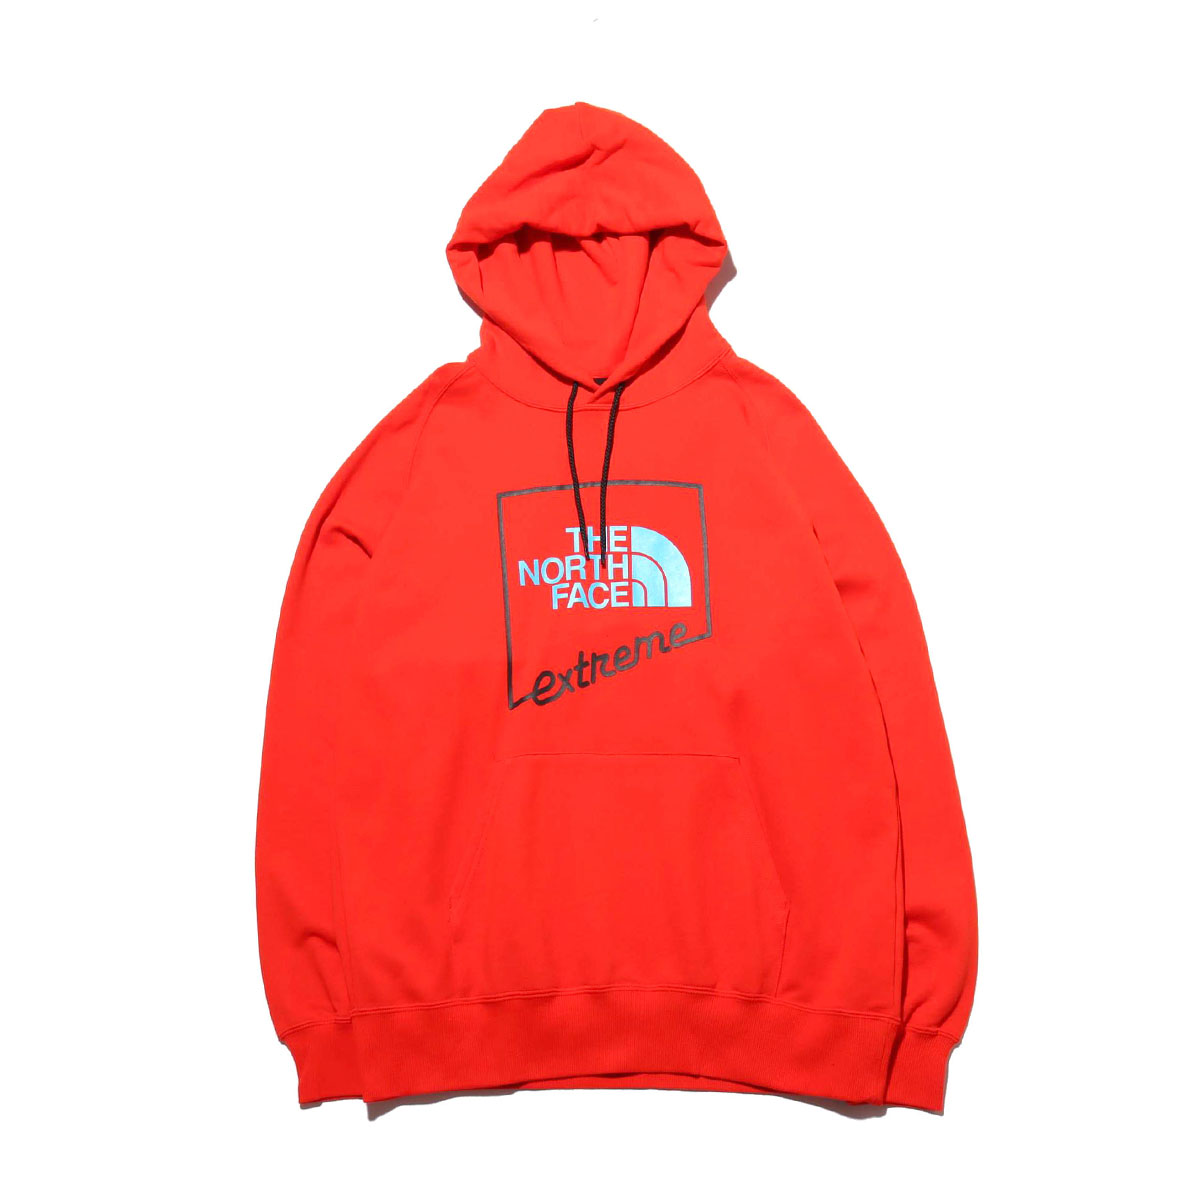 THE NORTH FACE EXTREME HOODIE(FIERY RED)(ザ・ノース・フェイス エクストリーム フーディー)【メンズ】【パーカー】【20SS-I】